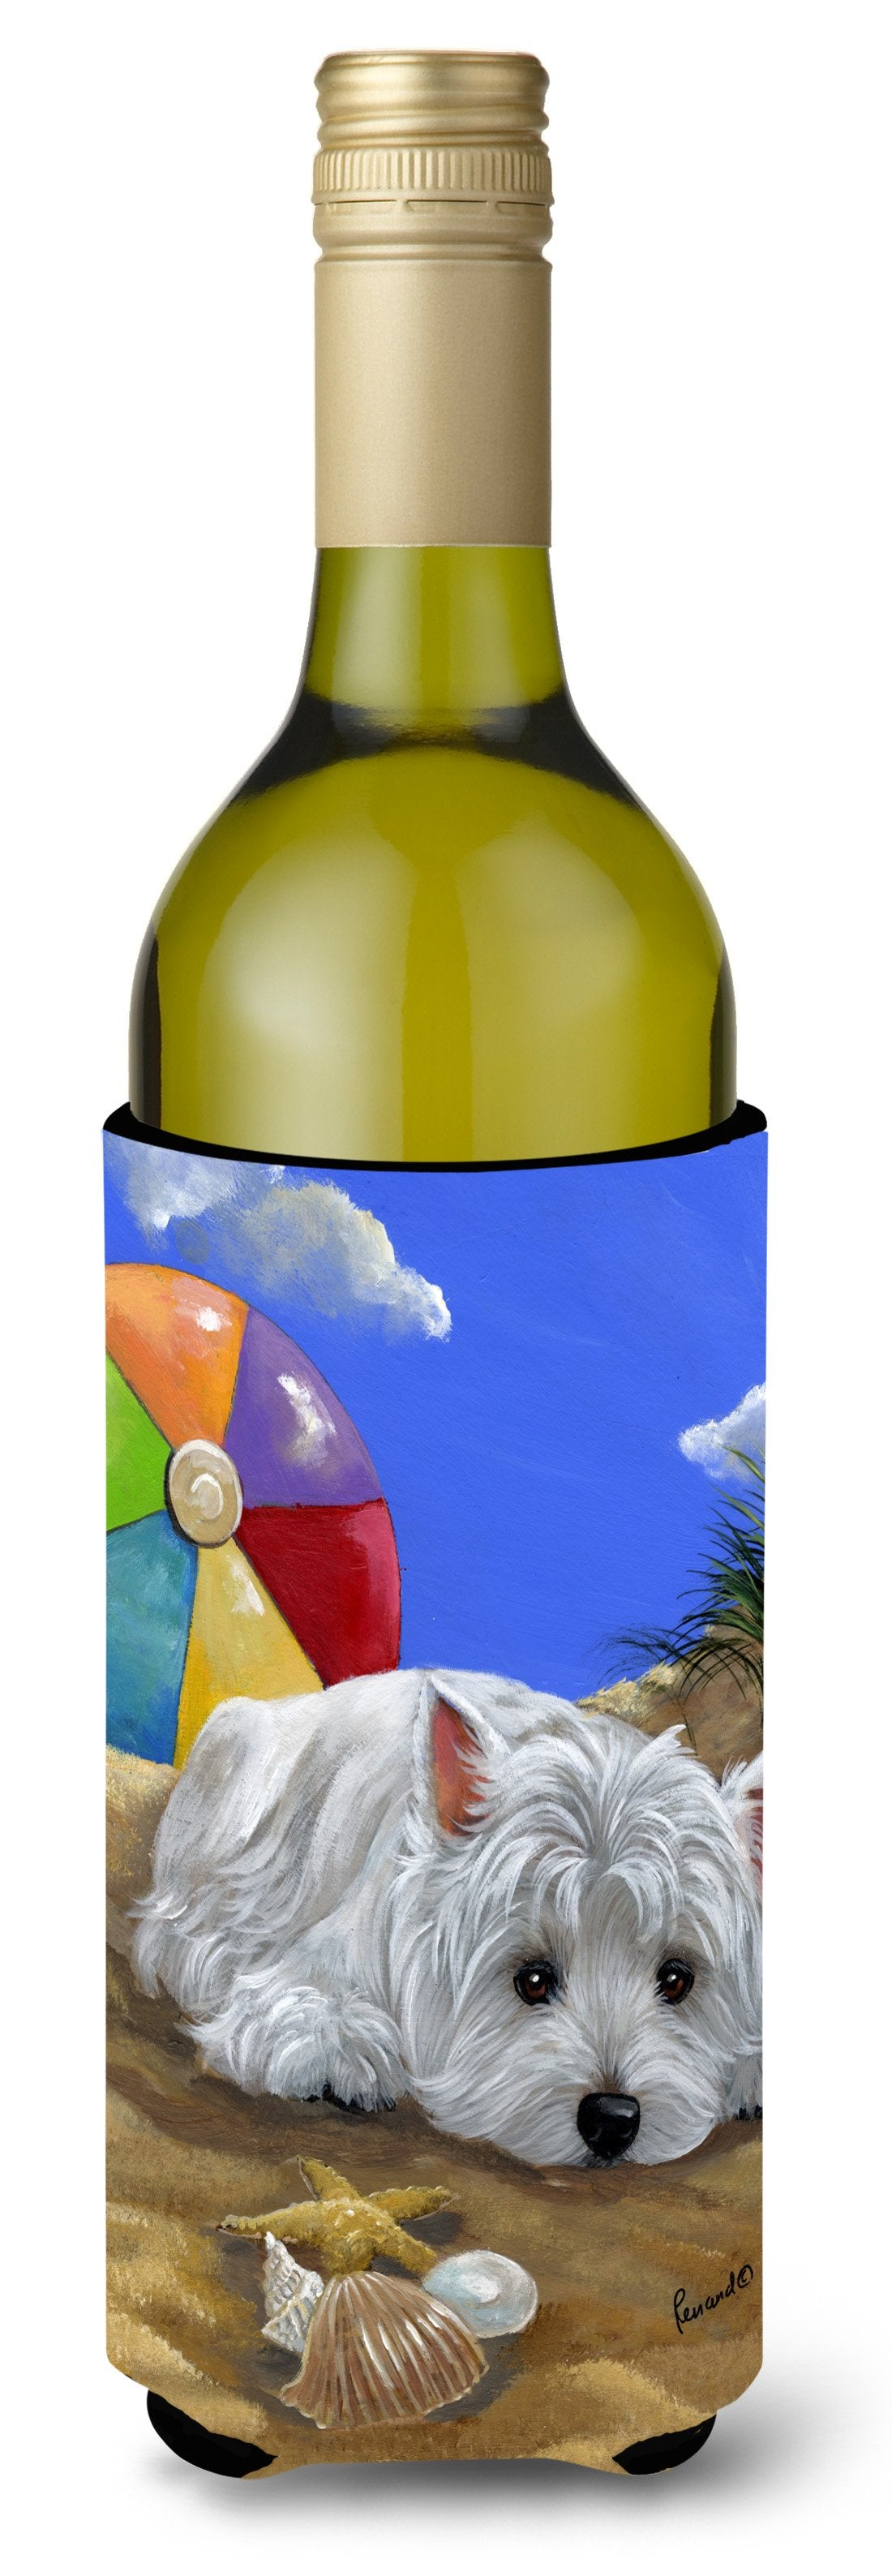 Westie Beach Baby Wine Bottle Hugger PPP3202LITERK by Caroline's Treasures